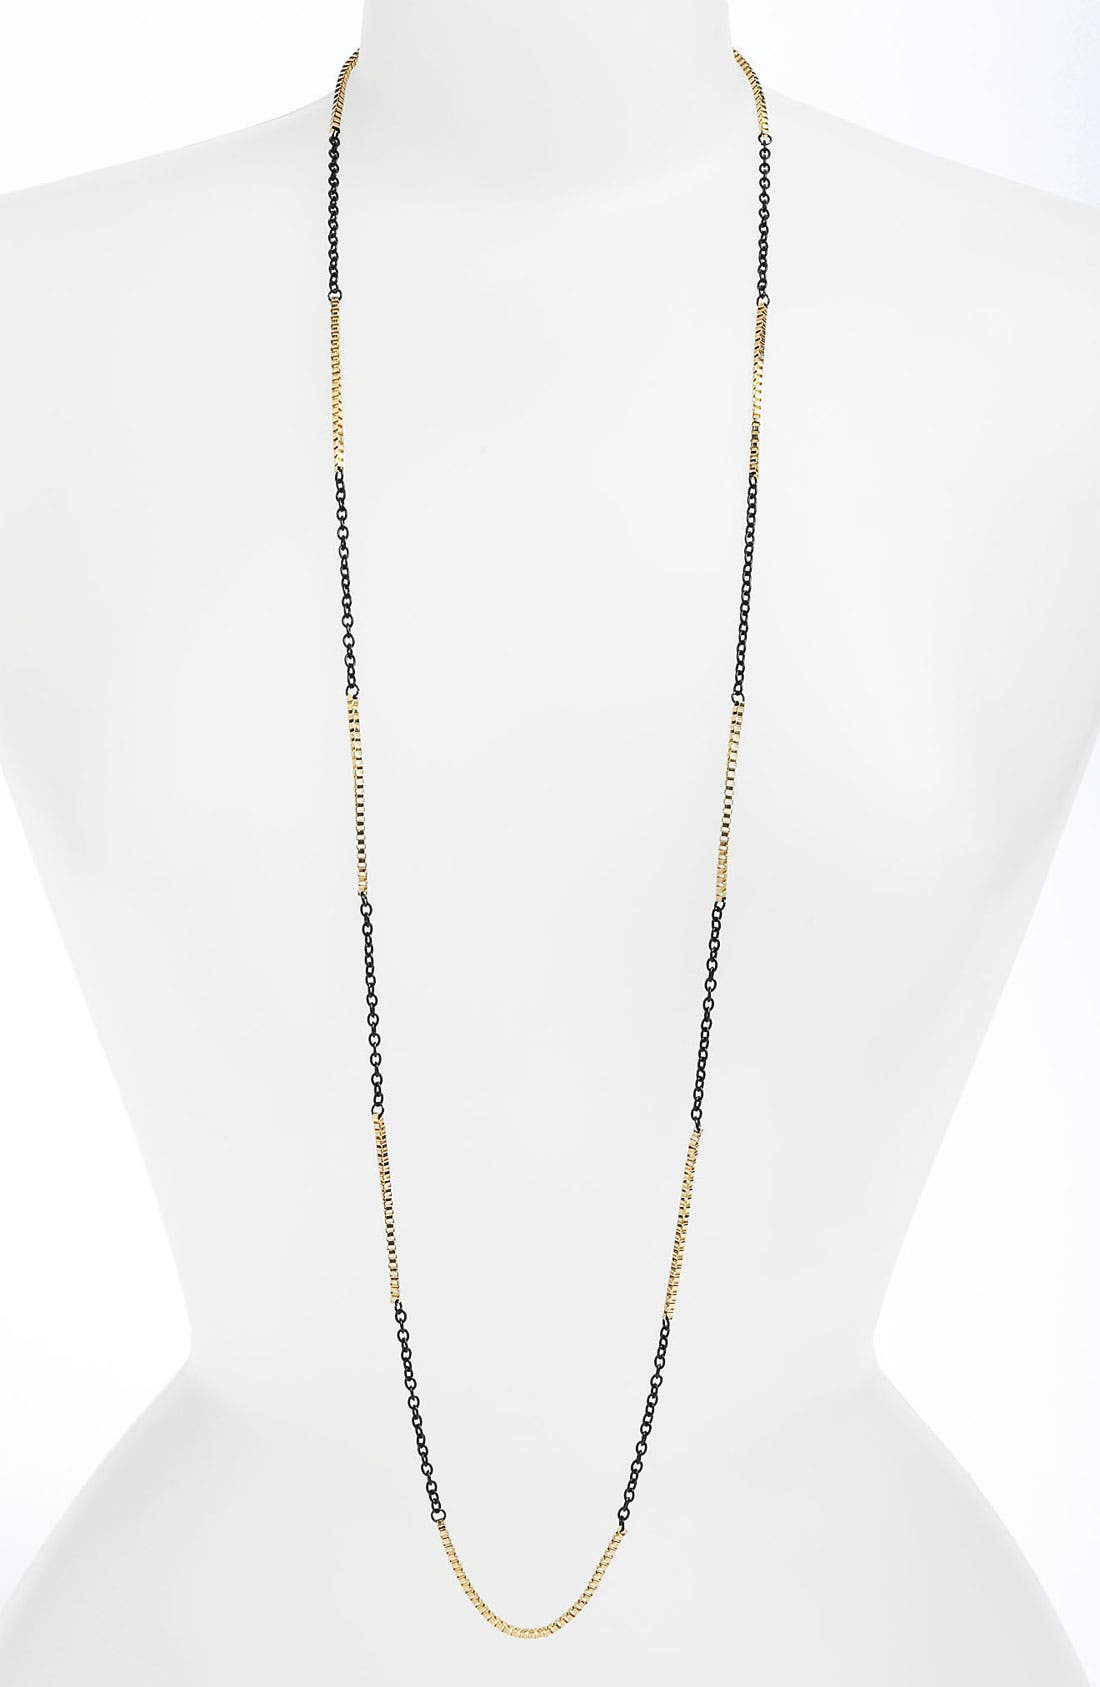 Stephan & Co Mixed Chain Necklace,                         Main,                         color, 016